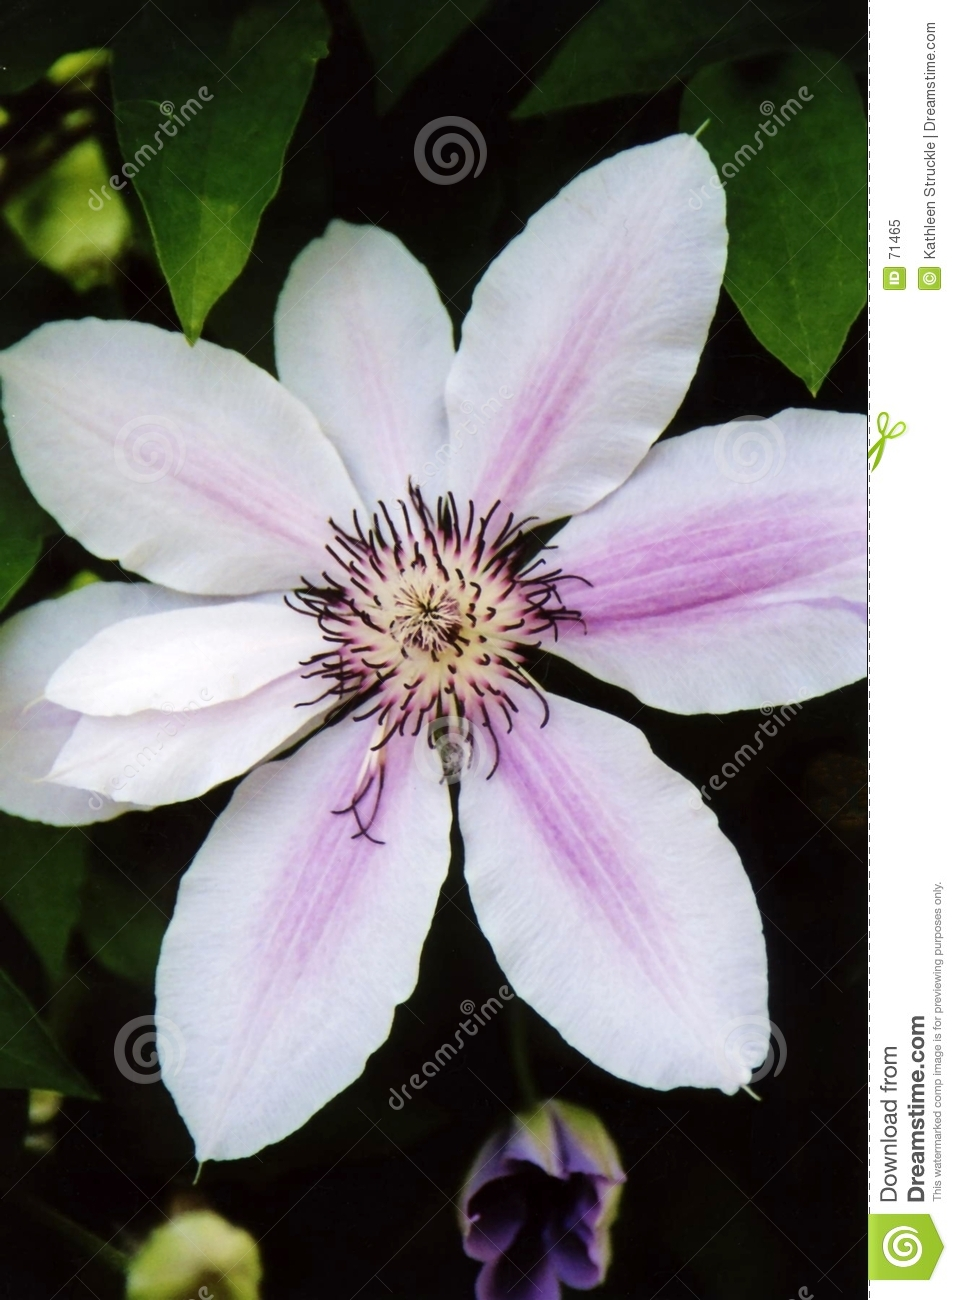 Clematis blanco